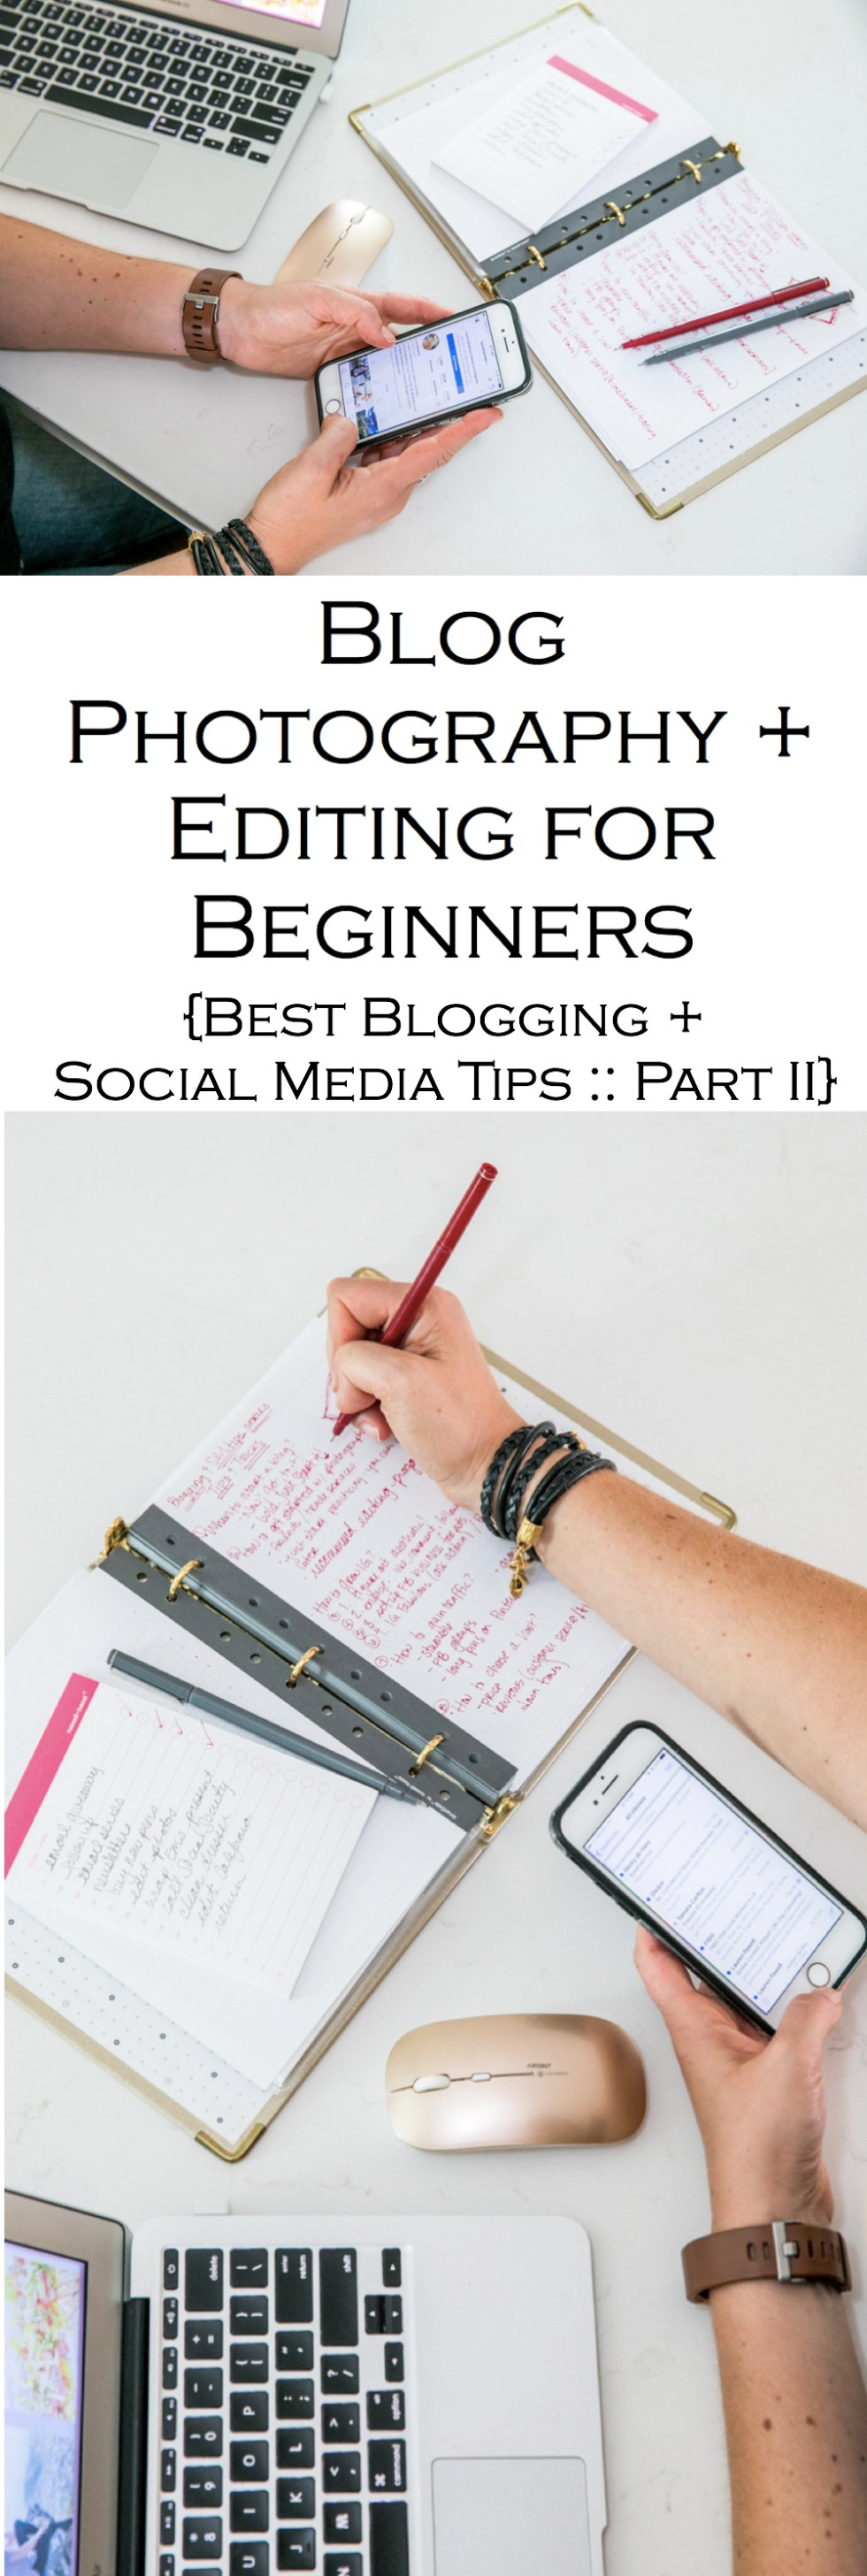 Best Blogging + Social Media Tips Series for New Bloggers and Small Businesses. Blog Photography Tips for Beginners, especially for fashion and food bloggers.